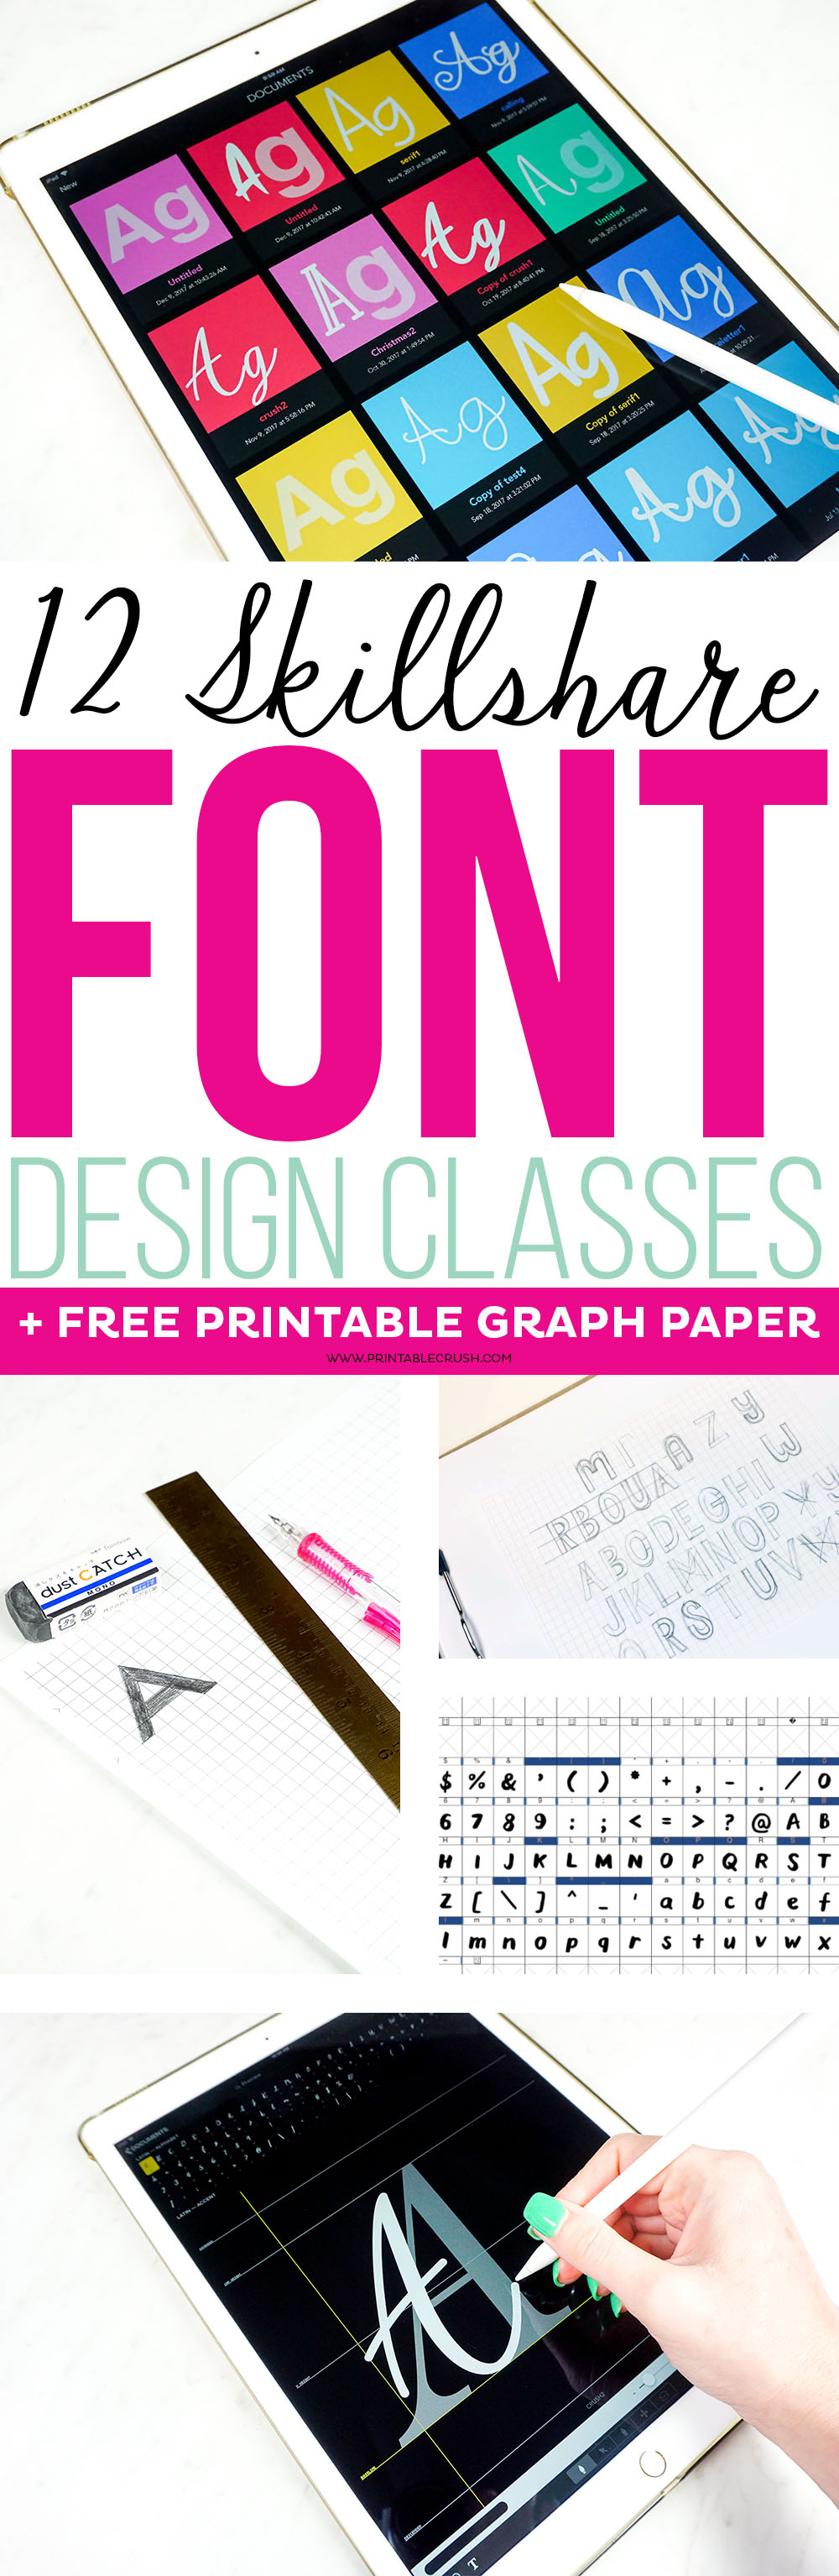 Whether you want to create fonts for personal use or for profit, check out these 12 Skillshare Font Design Classes to learn the basics of typography and font creation. via @printablecrush